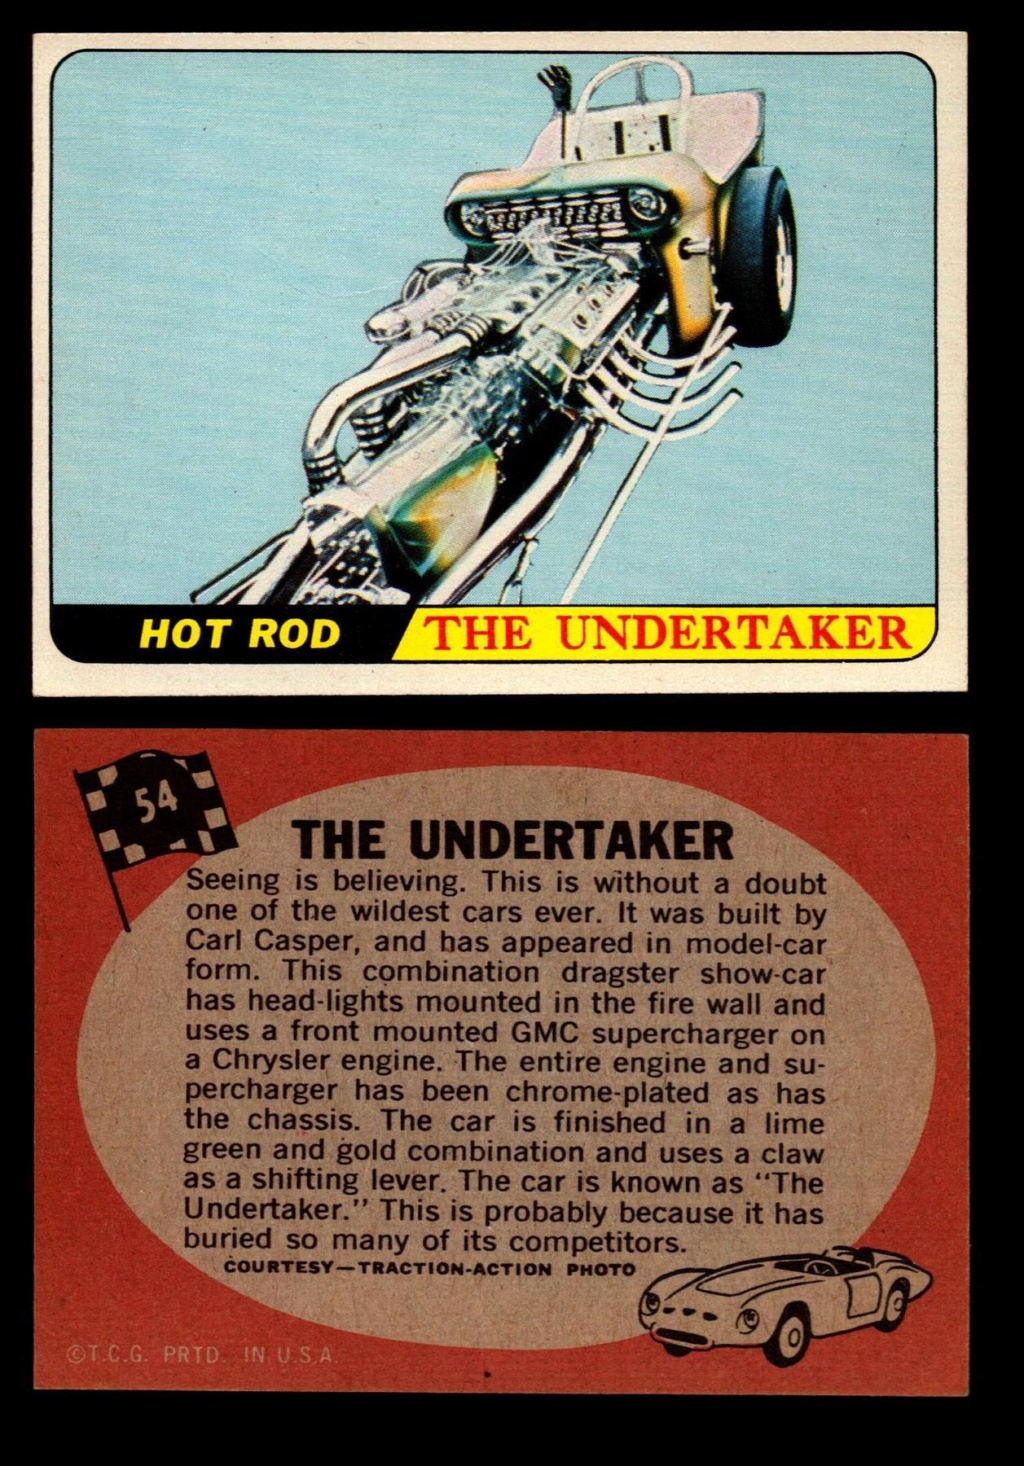 Hot Rods Topps - Vintage Trading Cards 1968 - Custom car - Dragster - Racer - Dream car - Barris Kustom City - Ed Roth Darrill Starbird, Gene Winfield, Bill Cuchenberry - Page 2 54_93e10